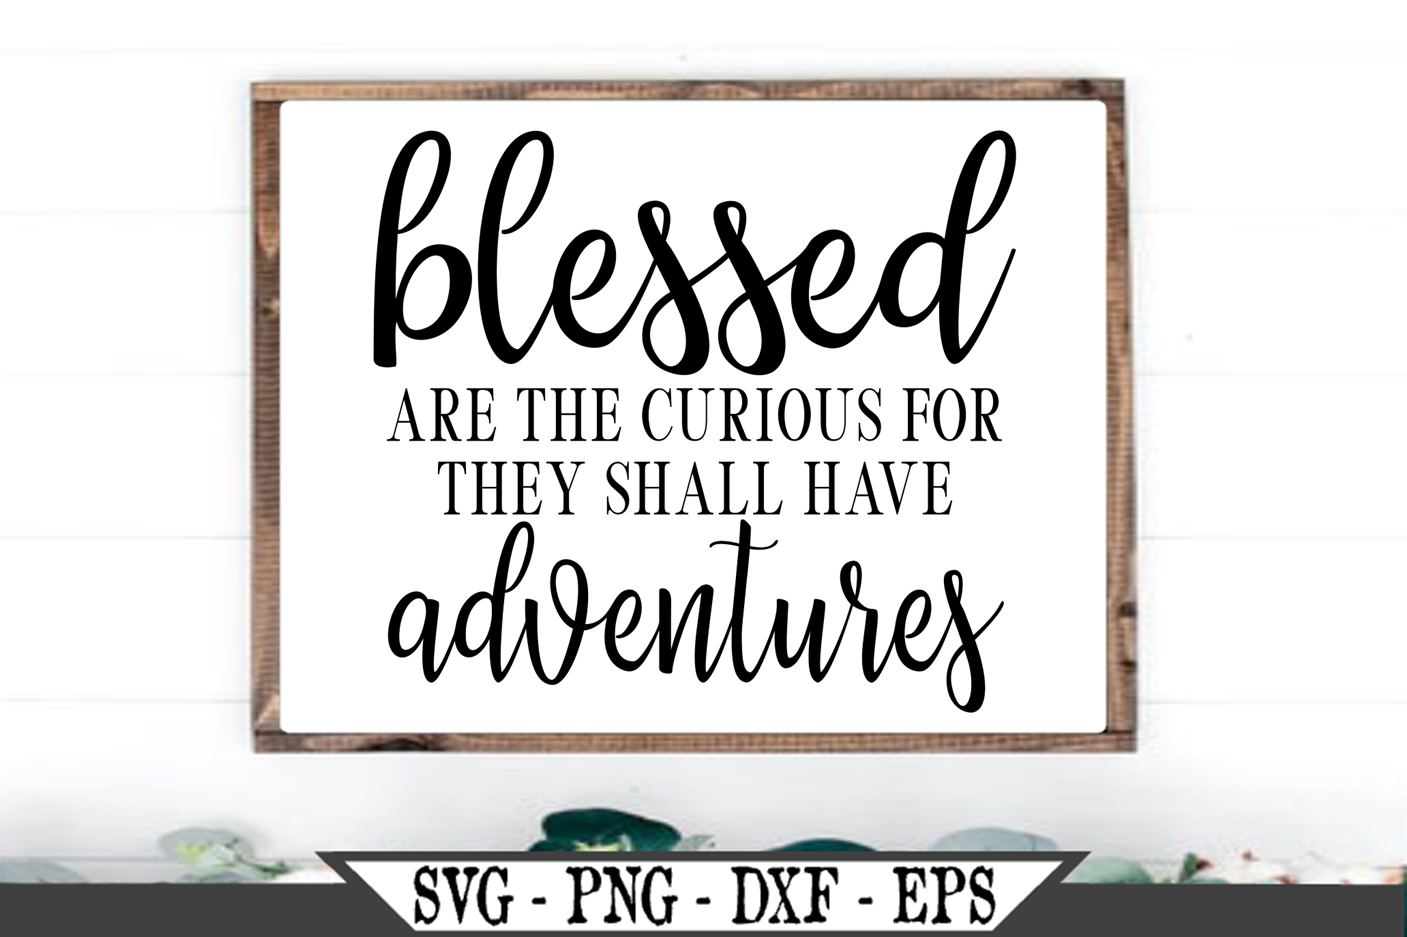 Blessed Are The Curious For They Shall Have Adventures SVG example image 1